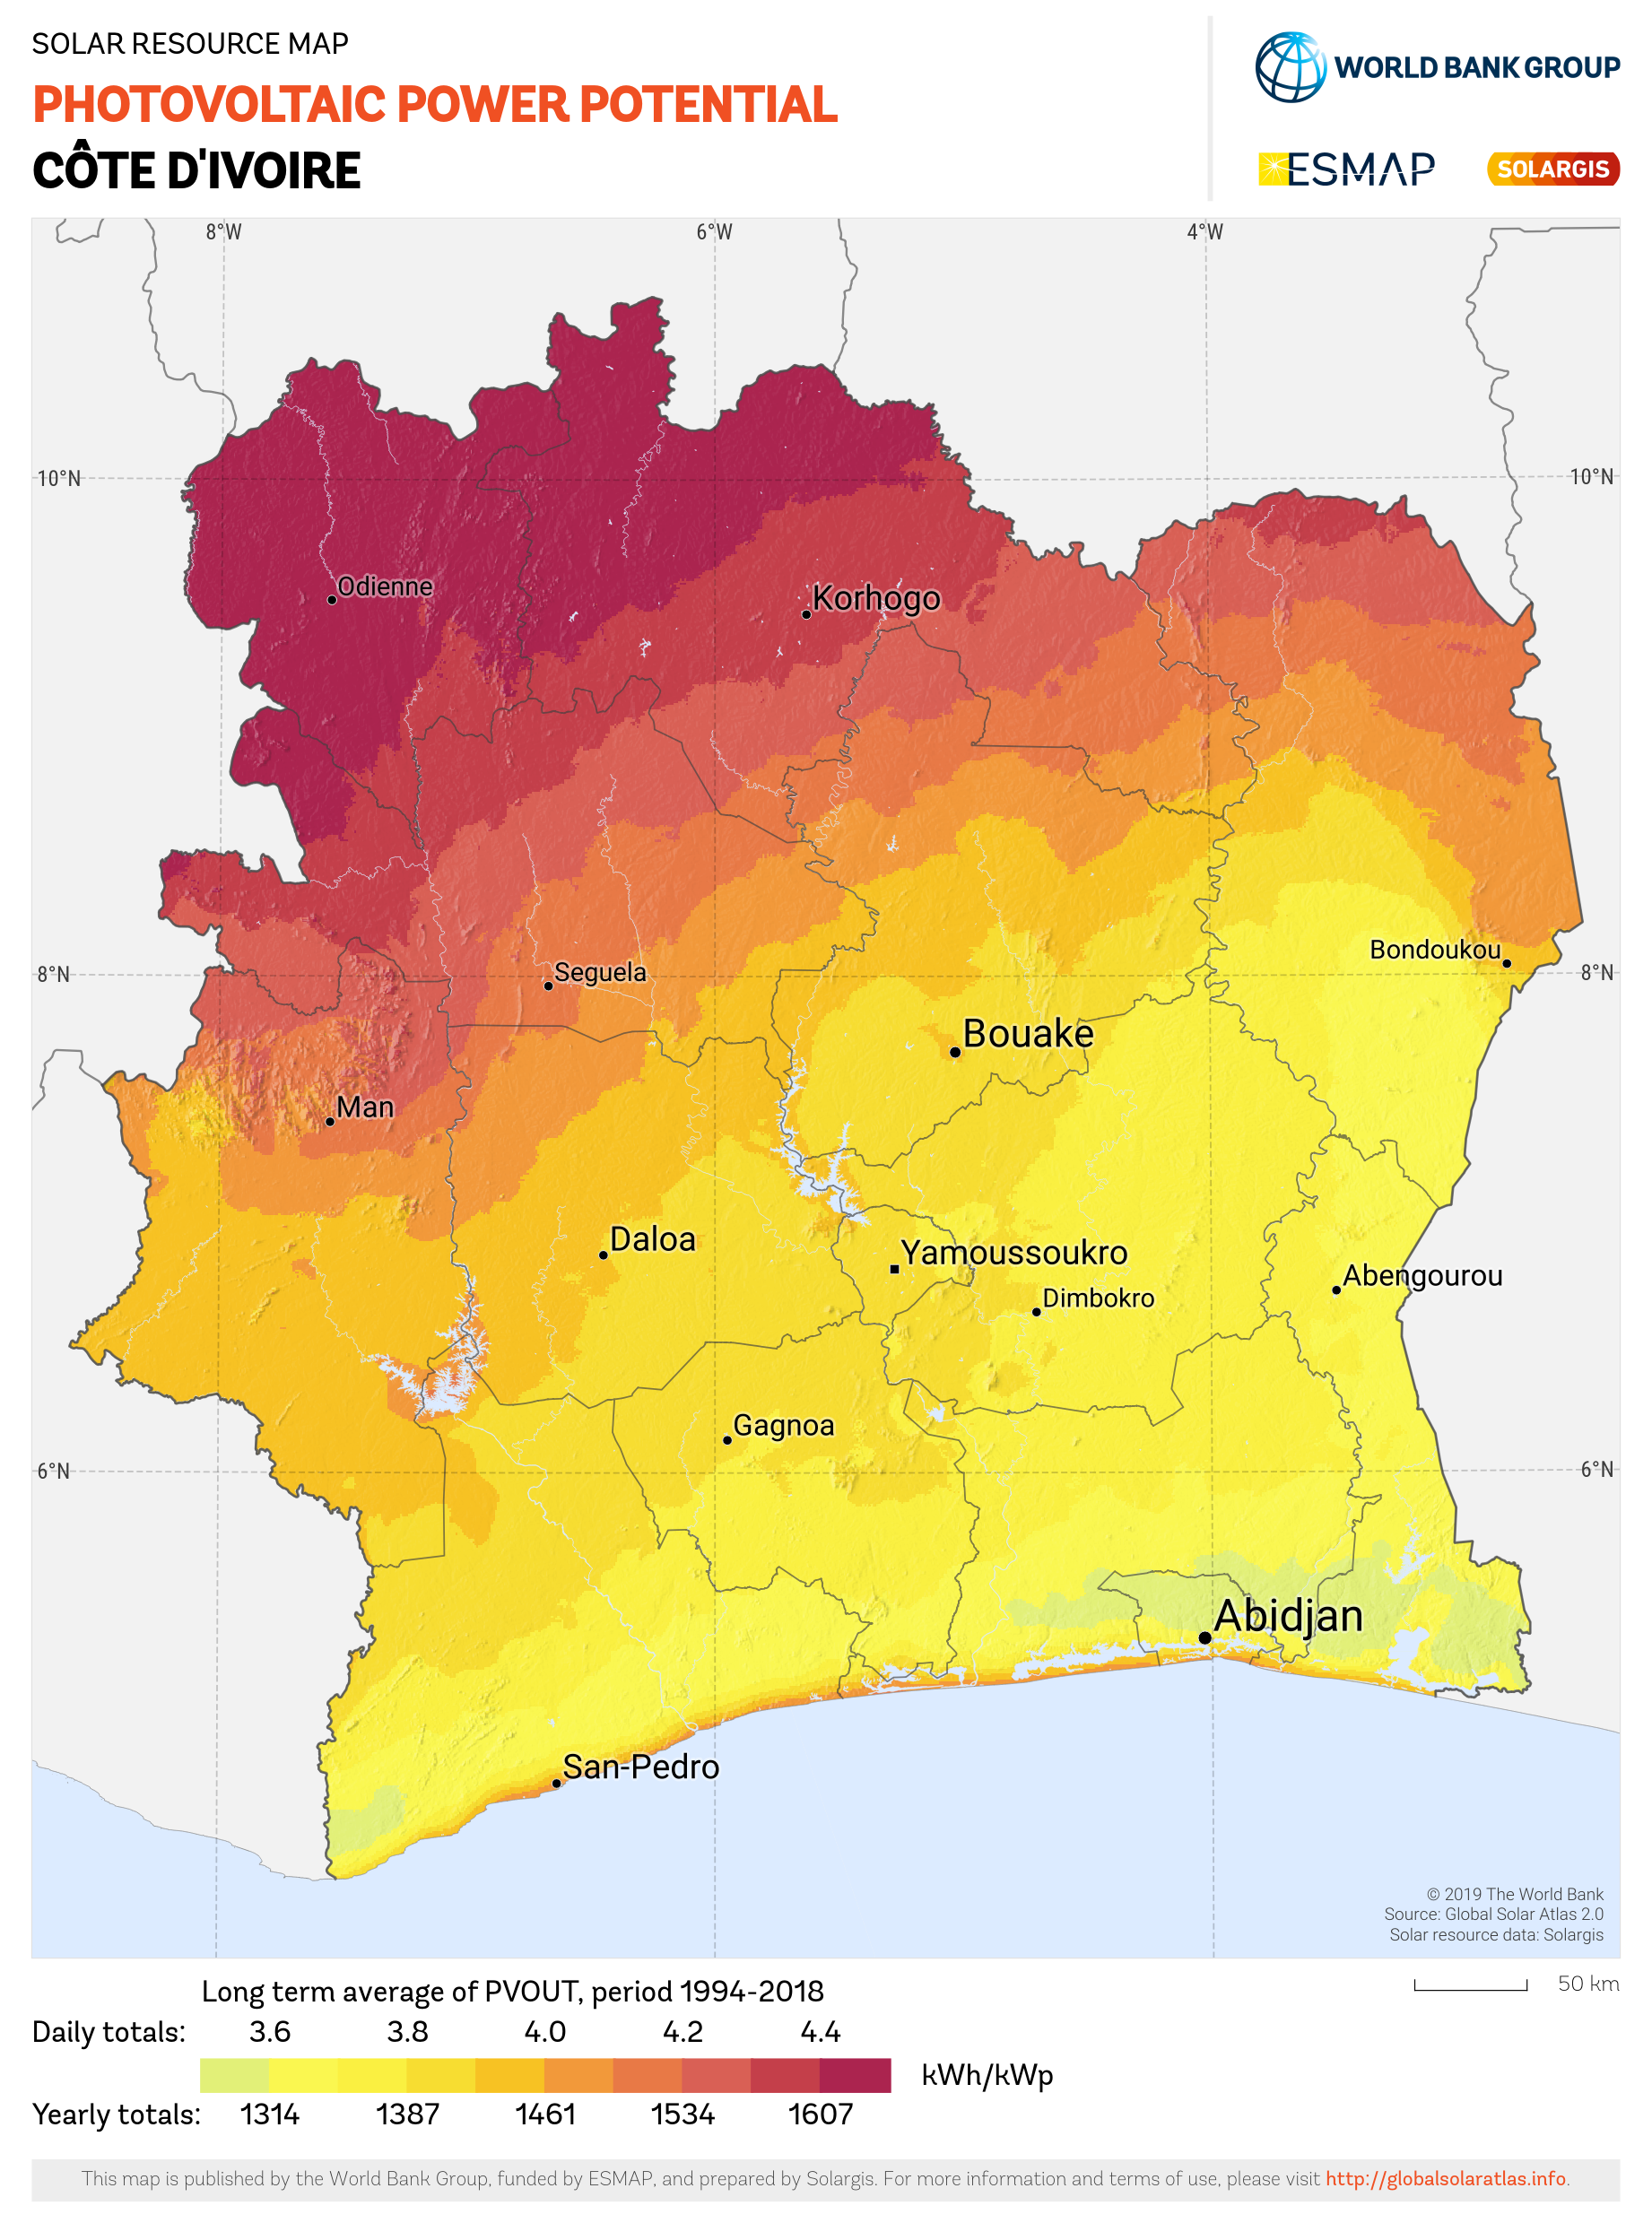 SOLARGIS_Photovoltaic Electricity Potential Cote DIvoire_PVOUT KWH per KWp